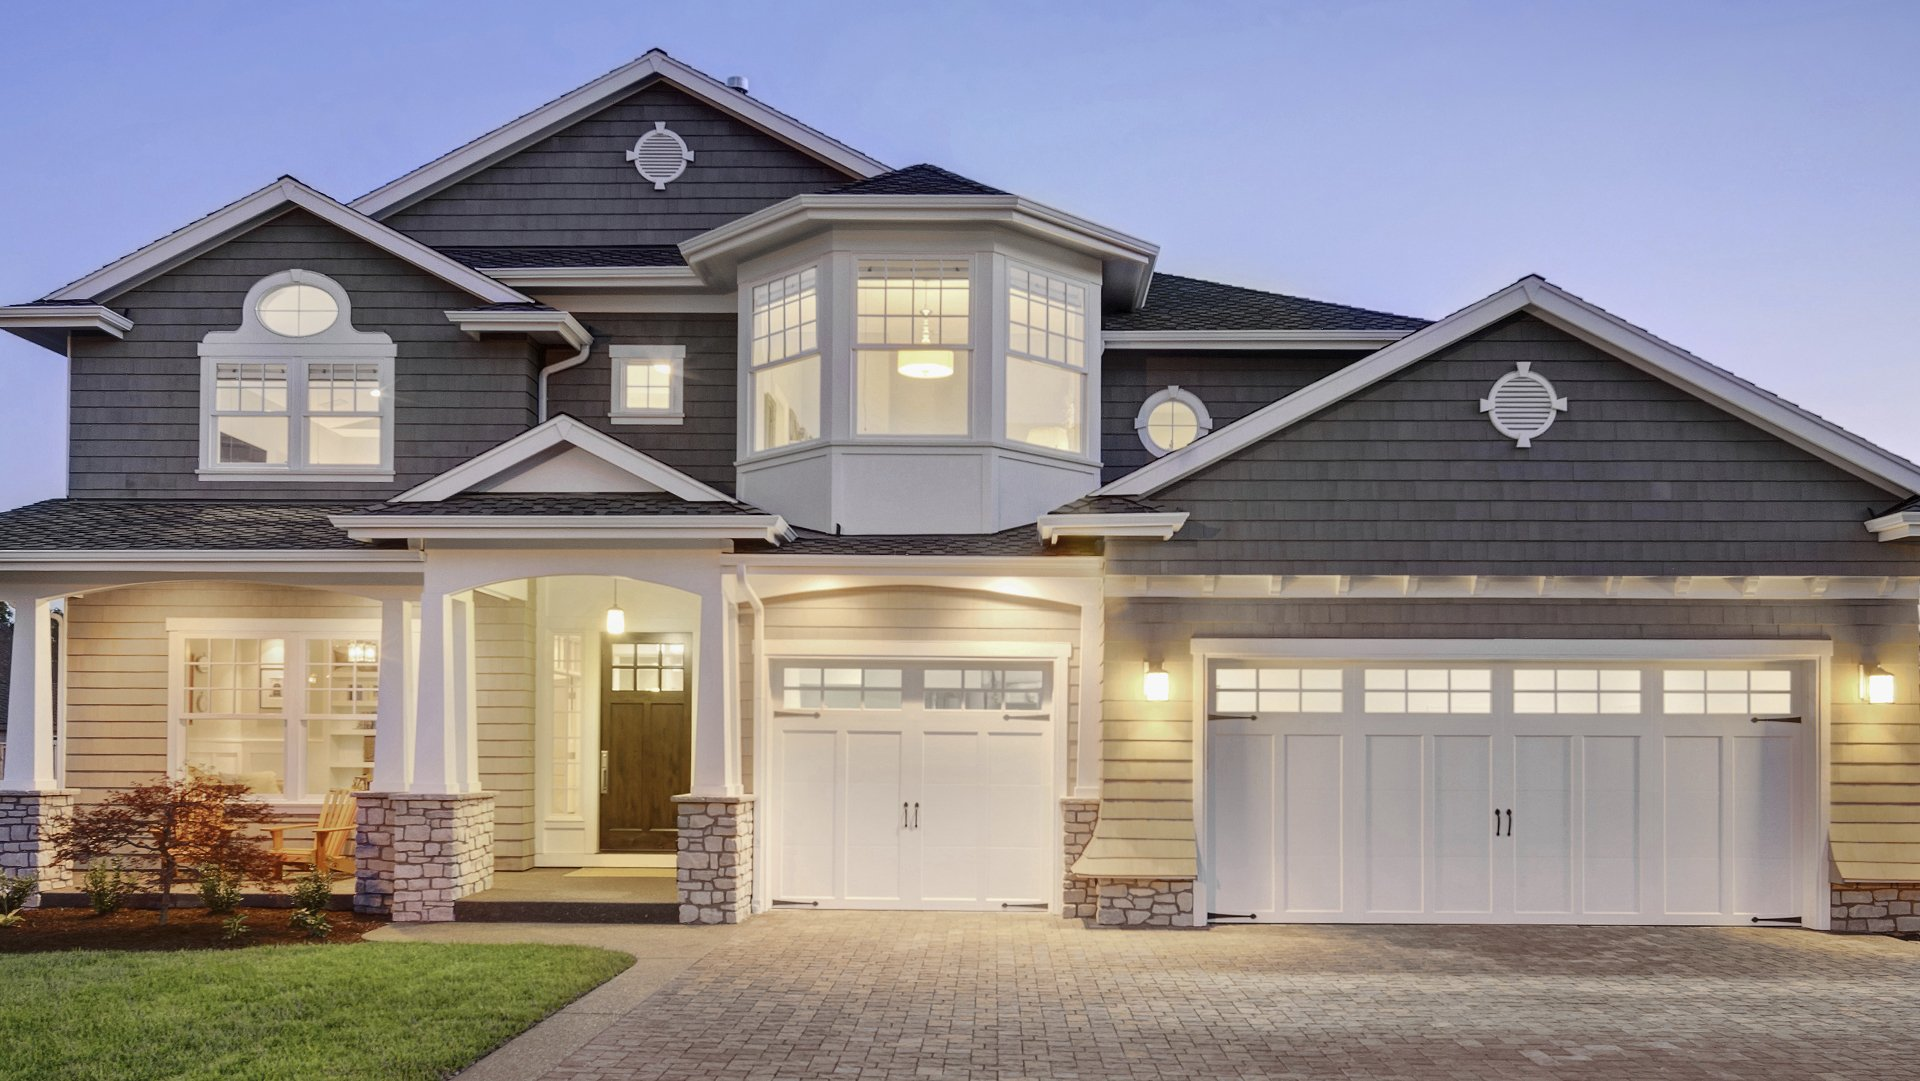 Home Improvement Loan - Finding the Best For Home Repairs and Improvements